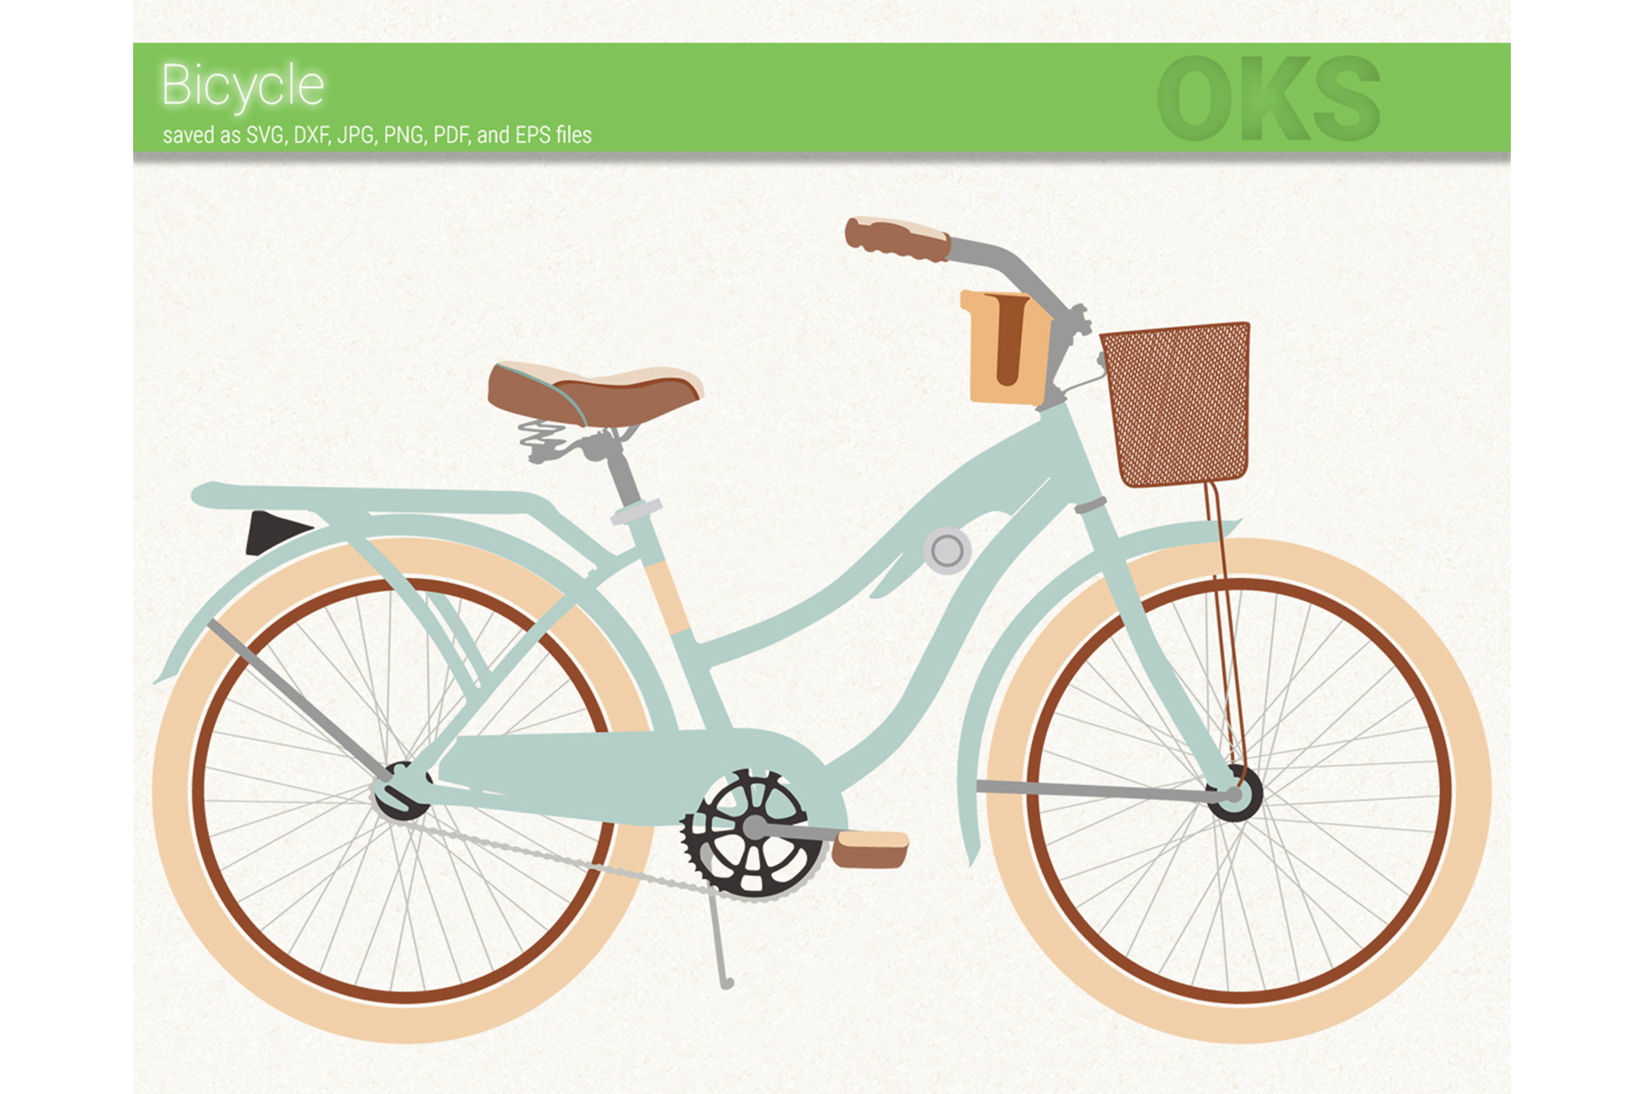 Download Free Bicycle Graphic By Crafteroks Creative Fabrica for Cricut Explore, Silhouette and other cutting machines.